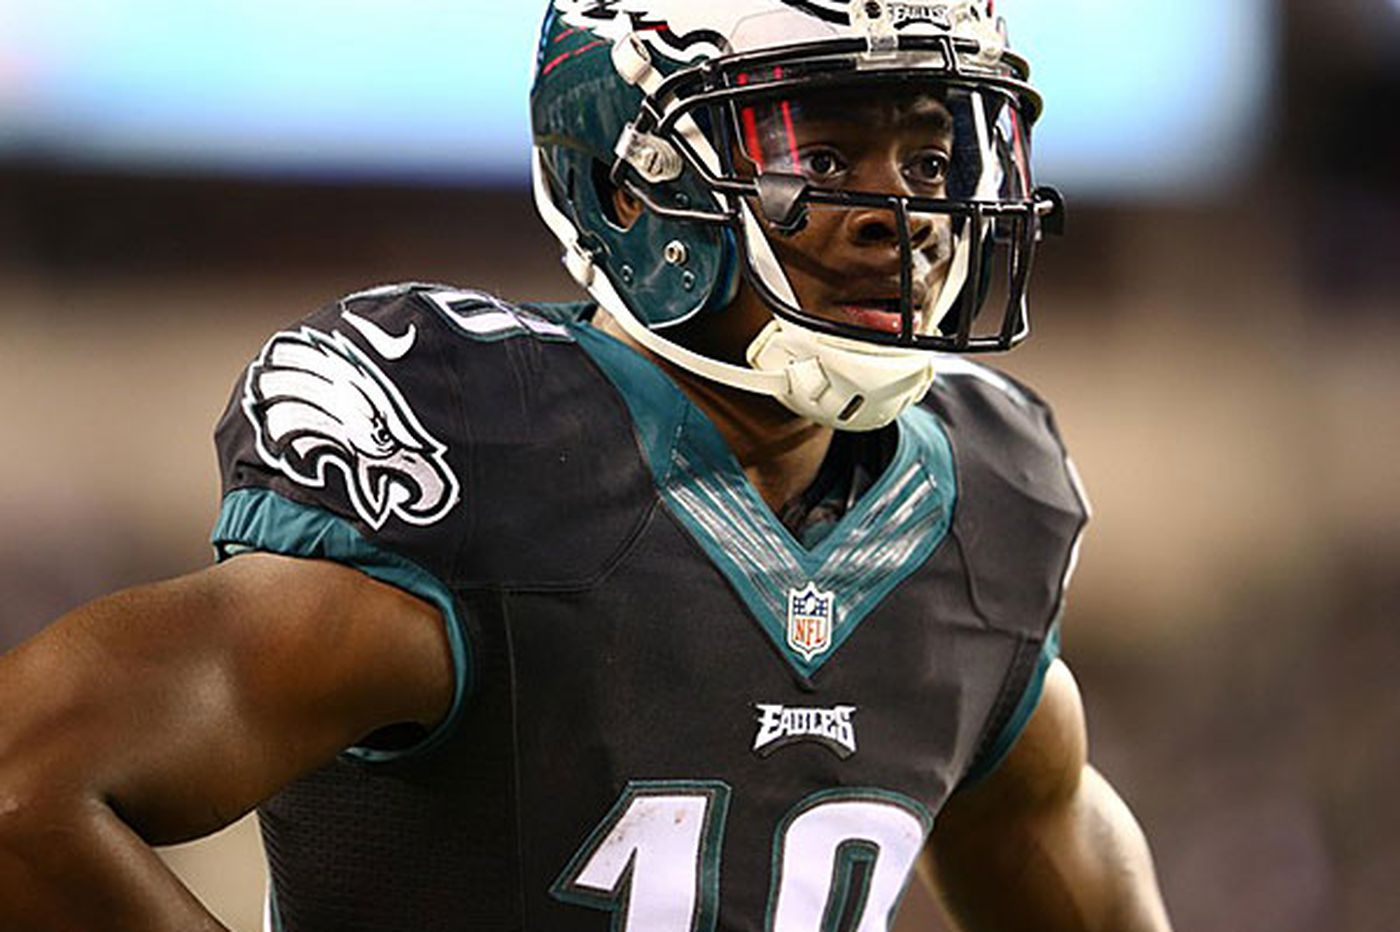 Eagles Notes: Kelly wants to keep McCoy, Maclin, but 'we'll look at everything'